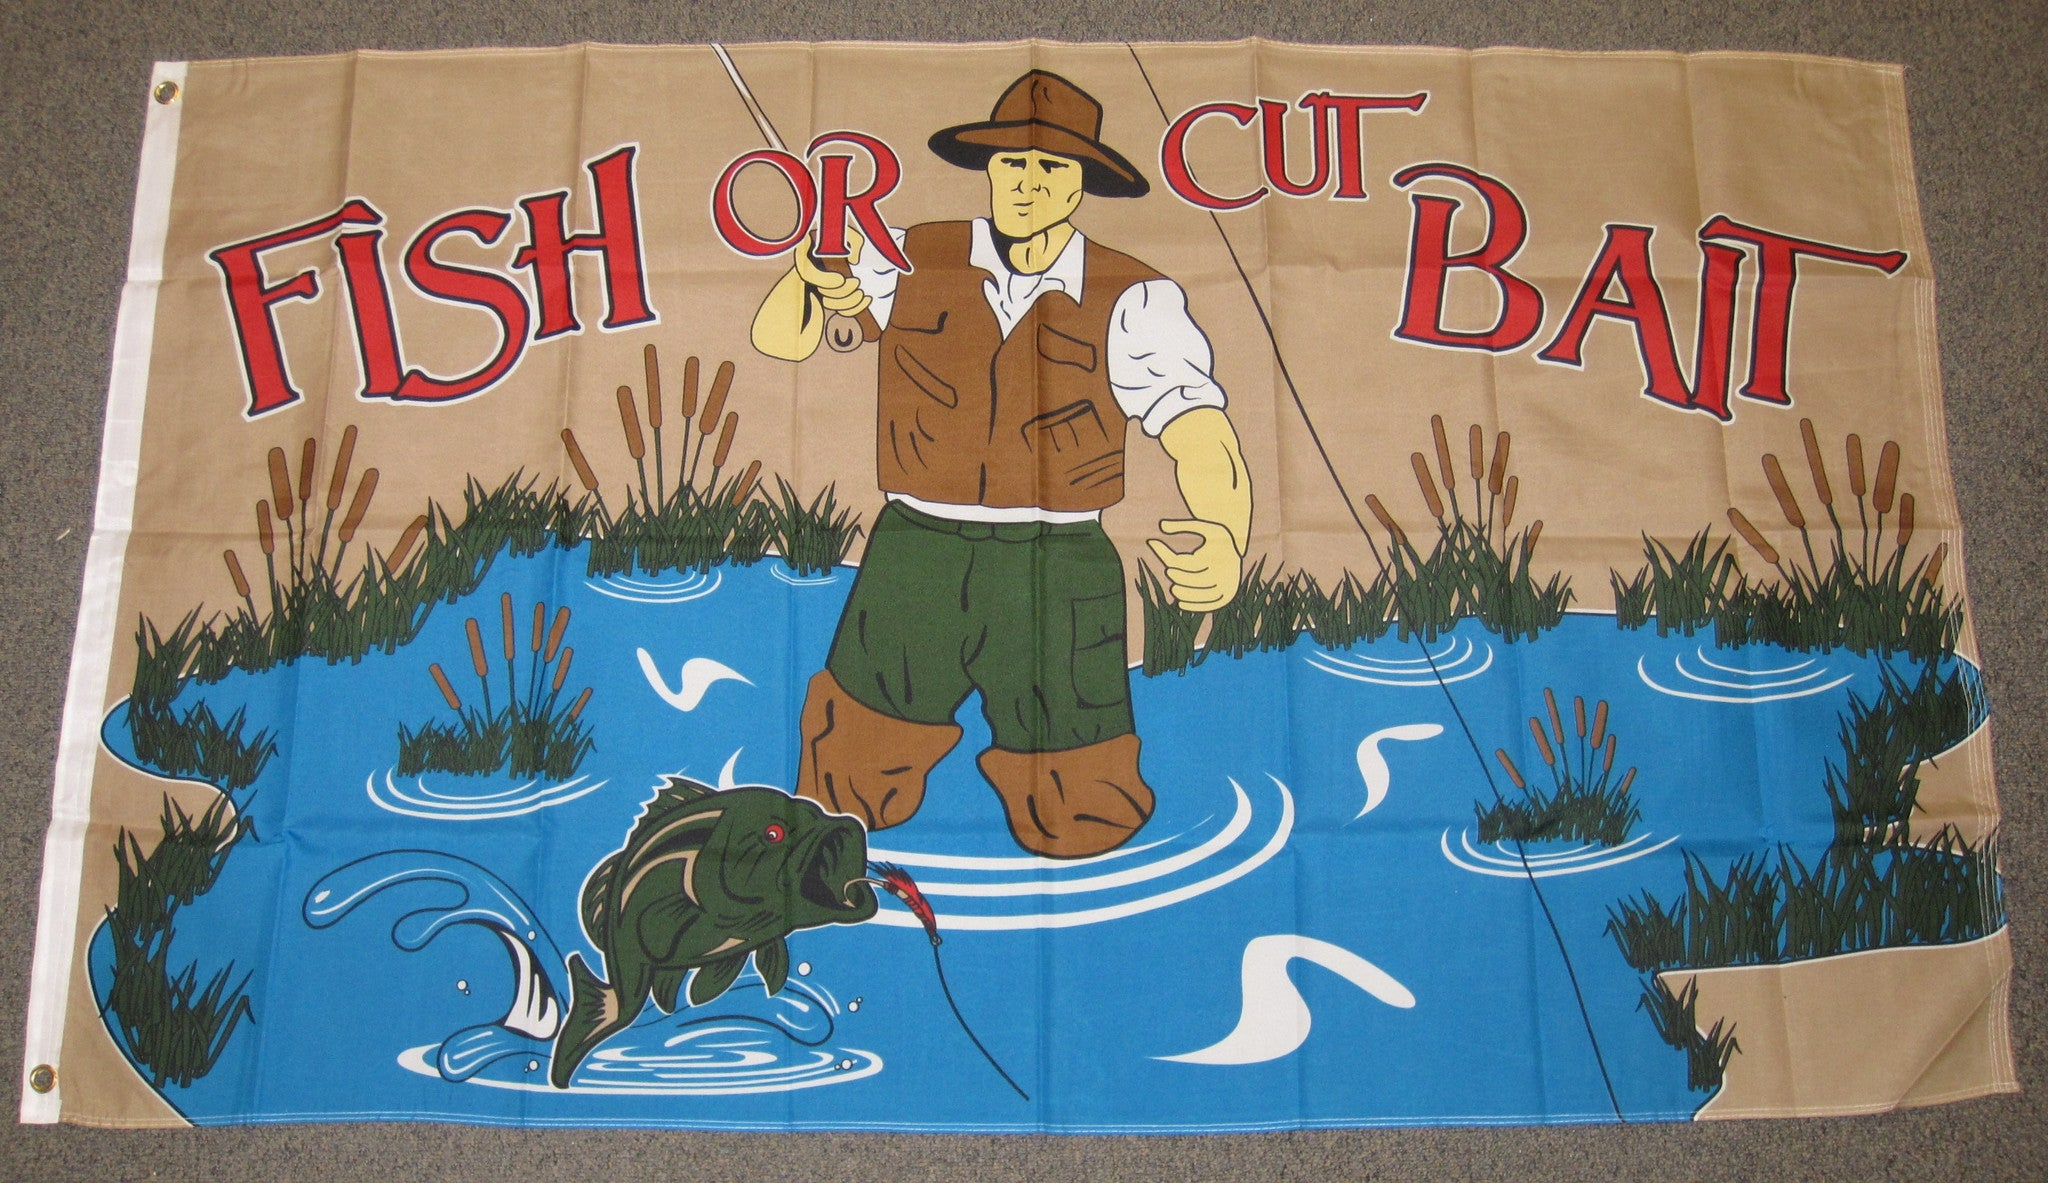 3'X5' Fish Or Cut Bait Polyester Flag FISHING Trout